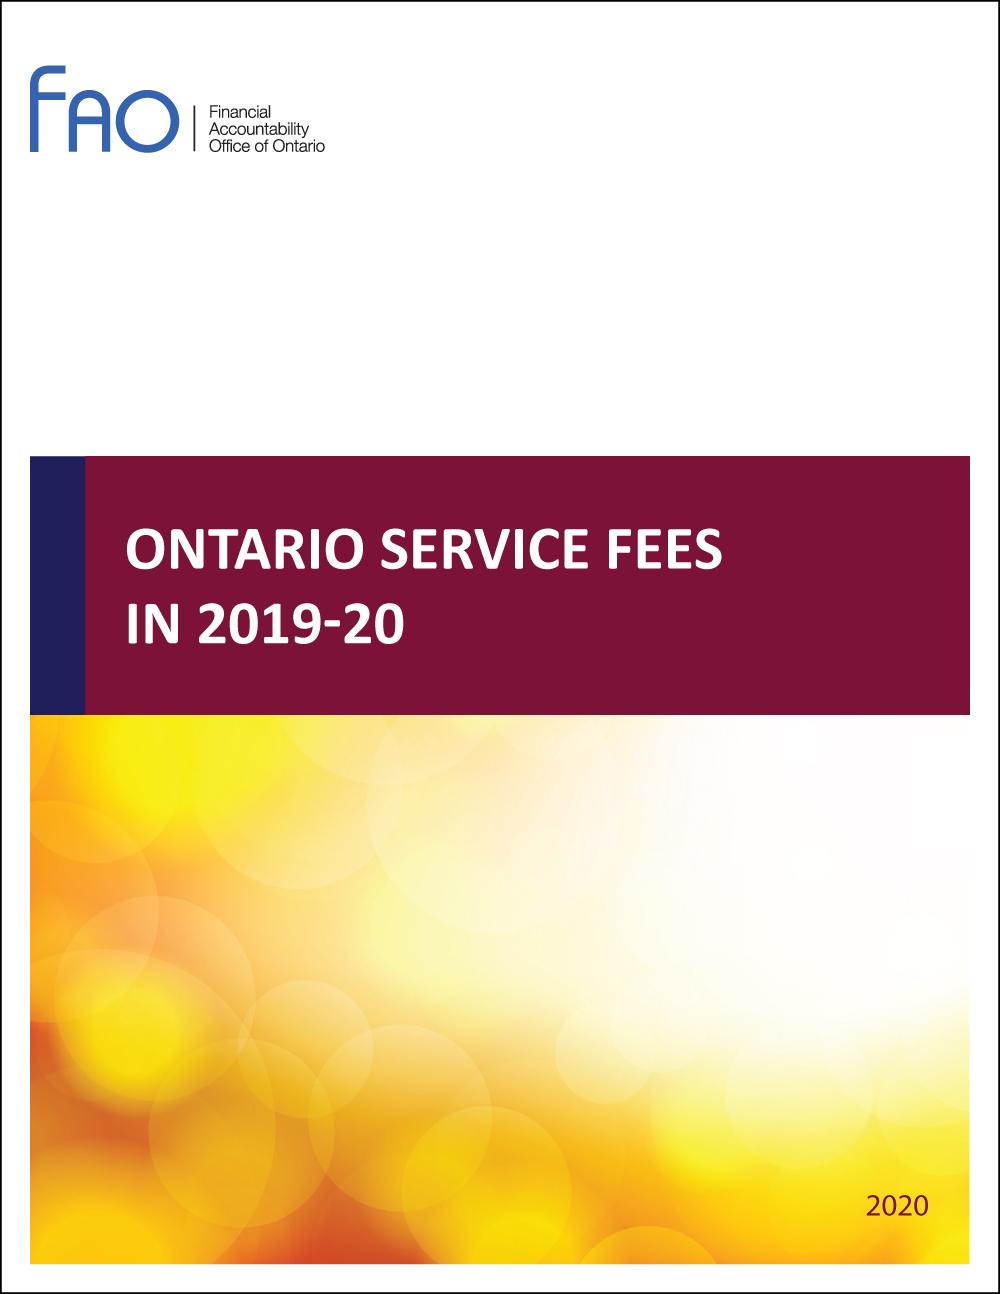 Ontario Service Fees in 2019-20